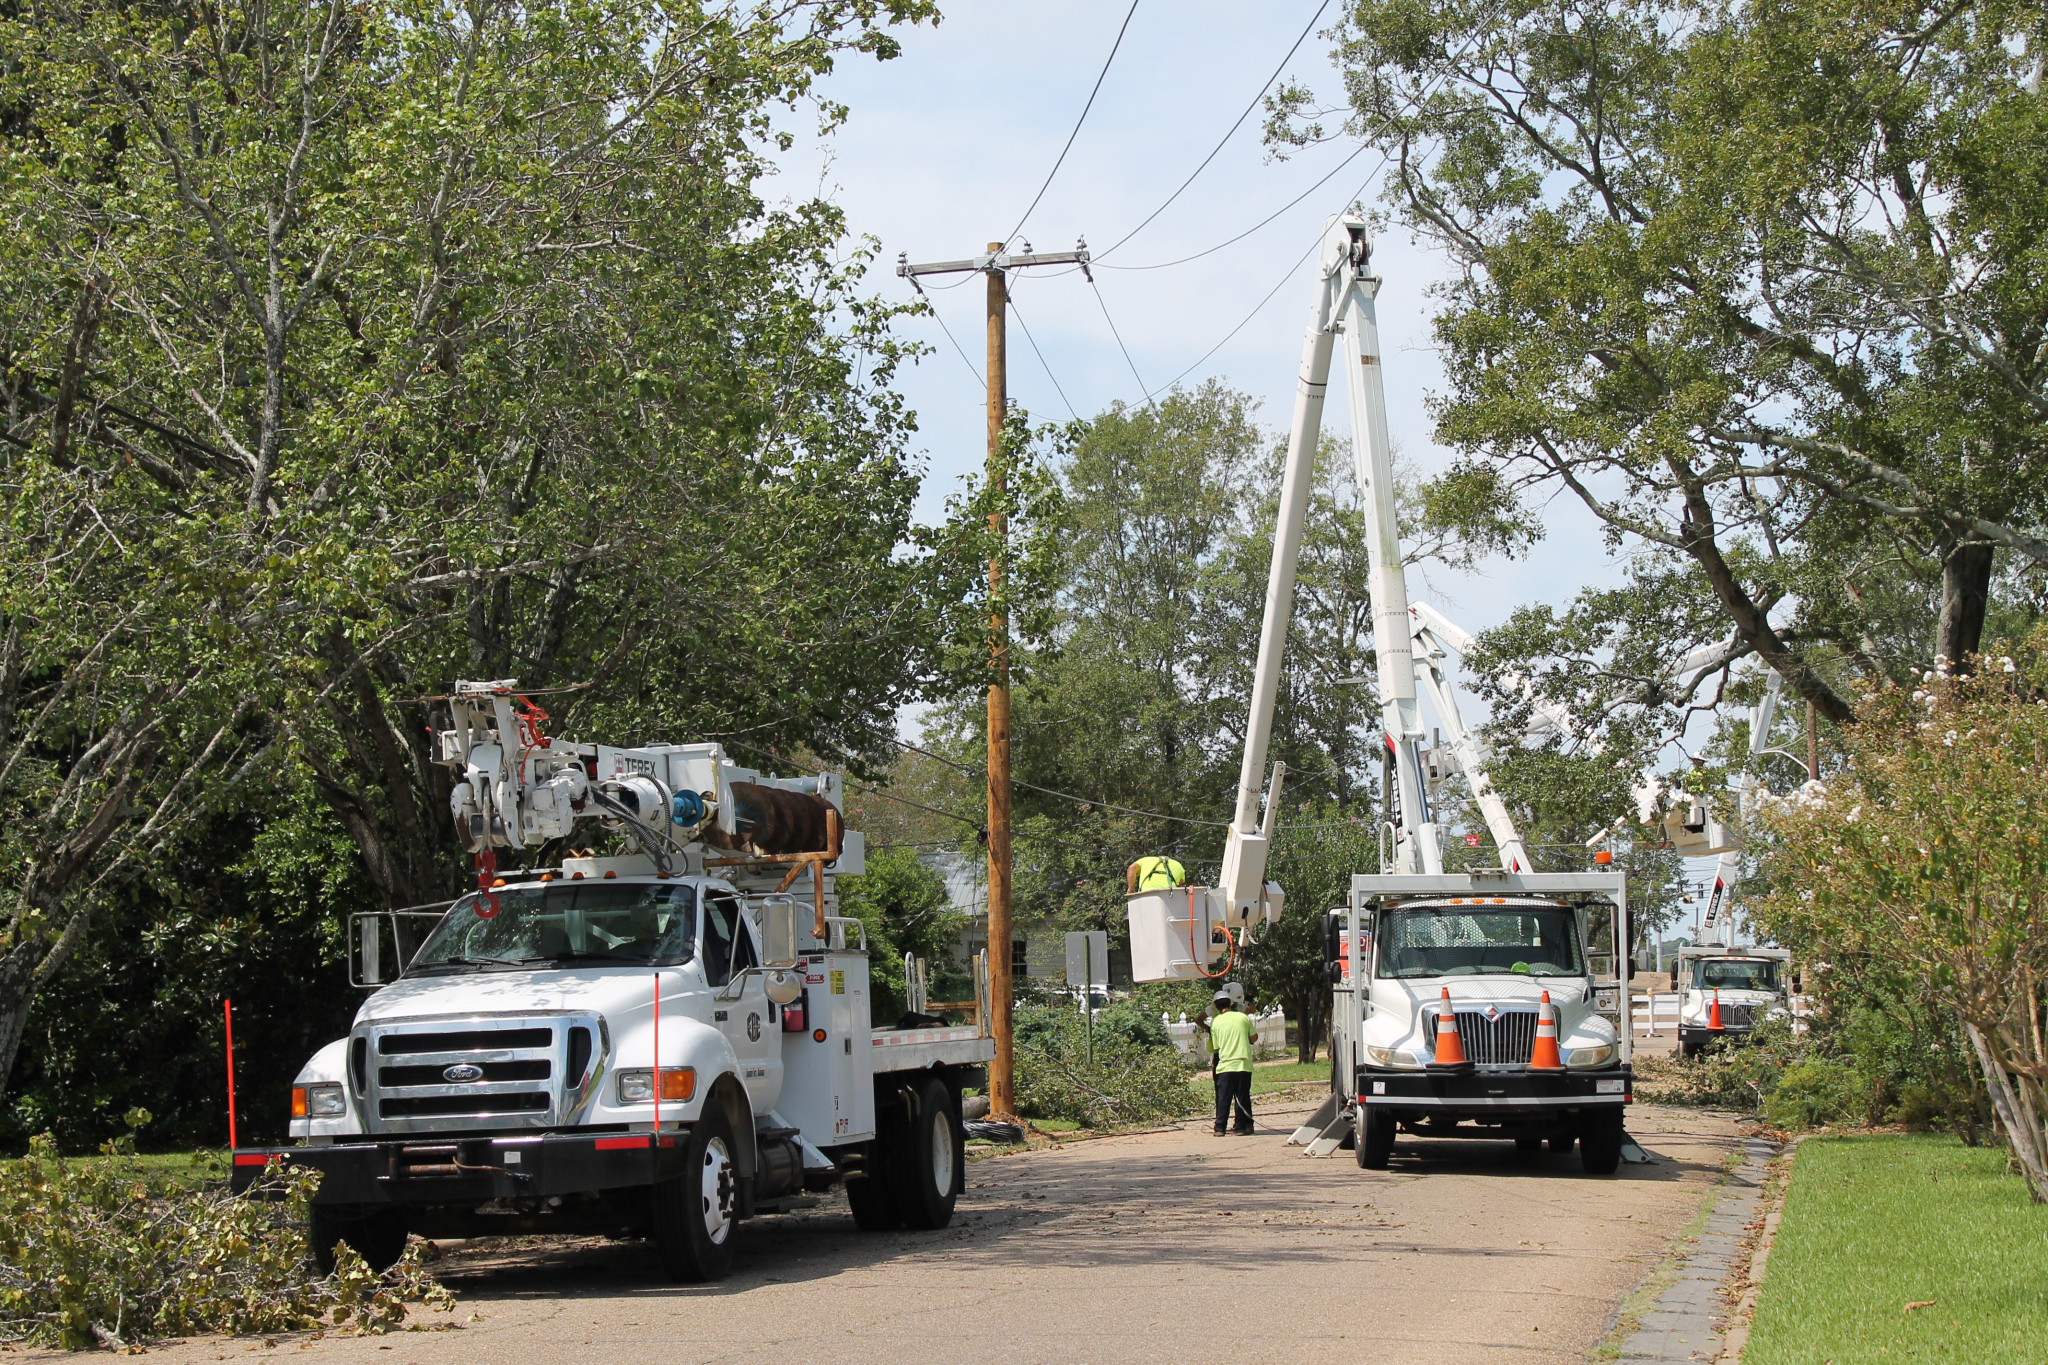 Work trucks tending to downed power lines on East Arizona Avenue